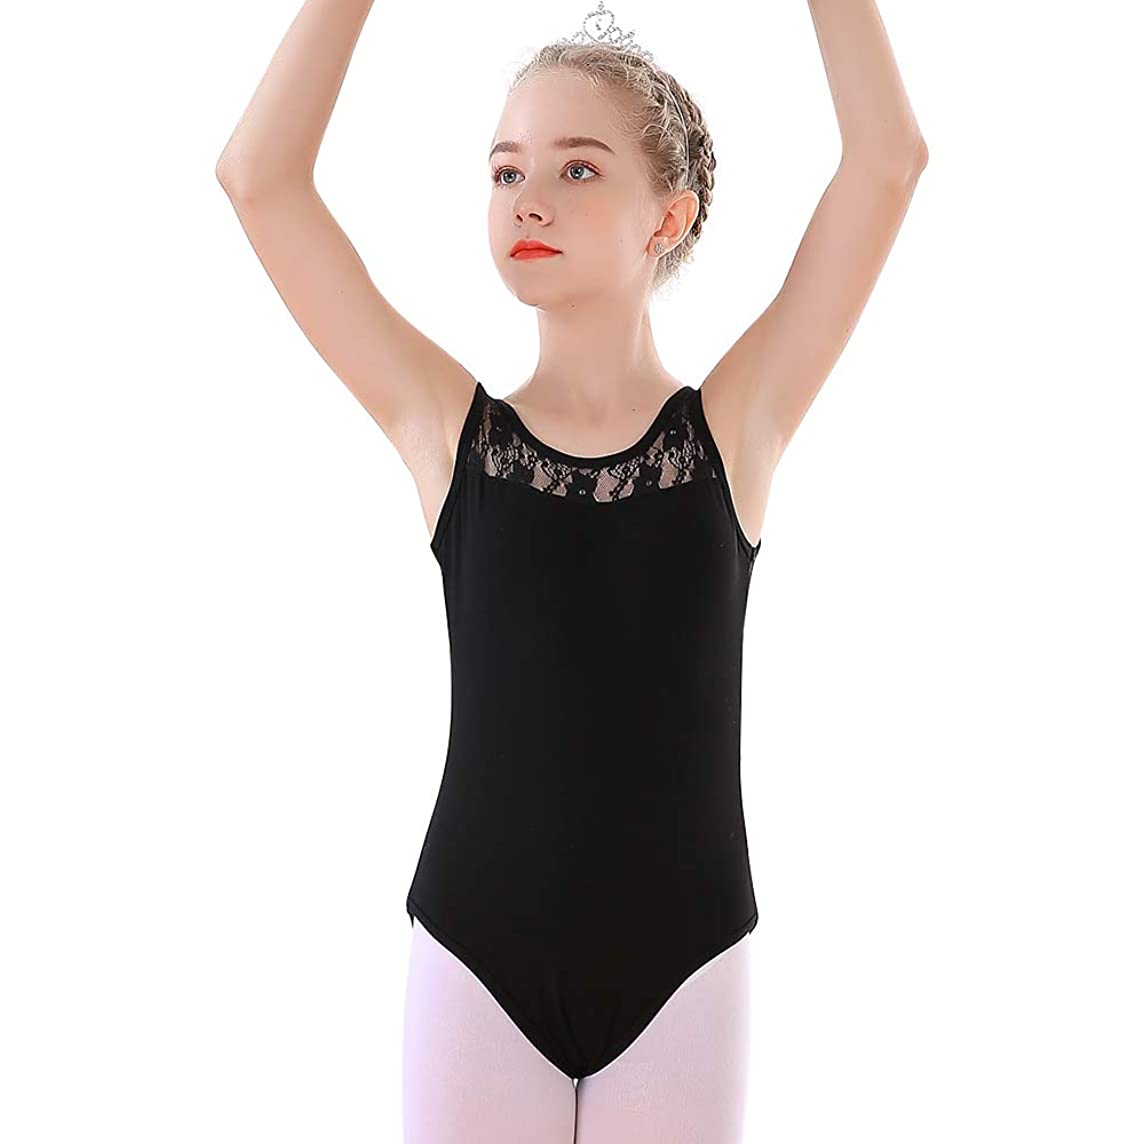 Soudittur Tank Leotards for Girls Ballet Dance Gymnastics Costume with Lace Neckline and Sleeveless